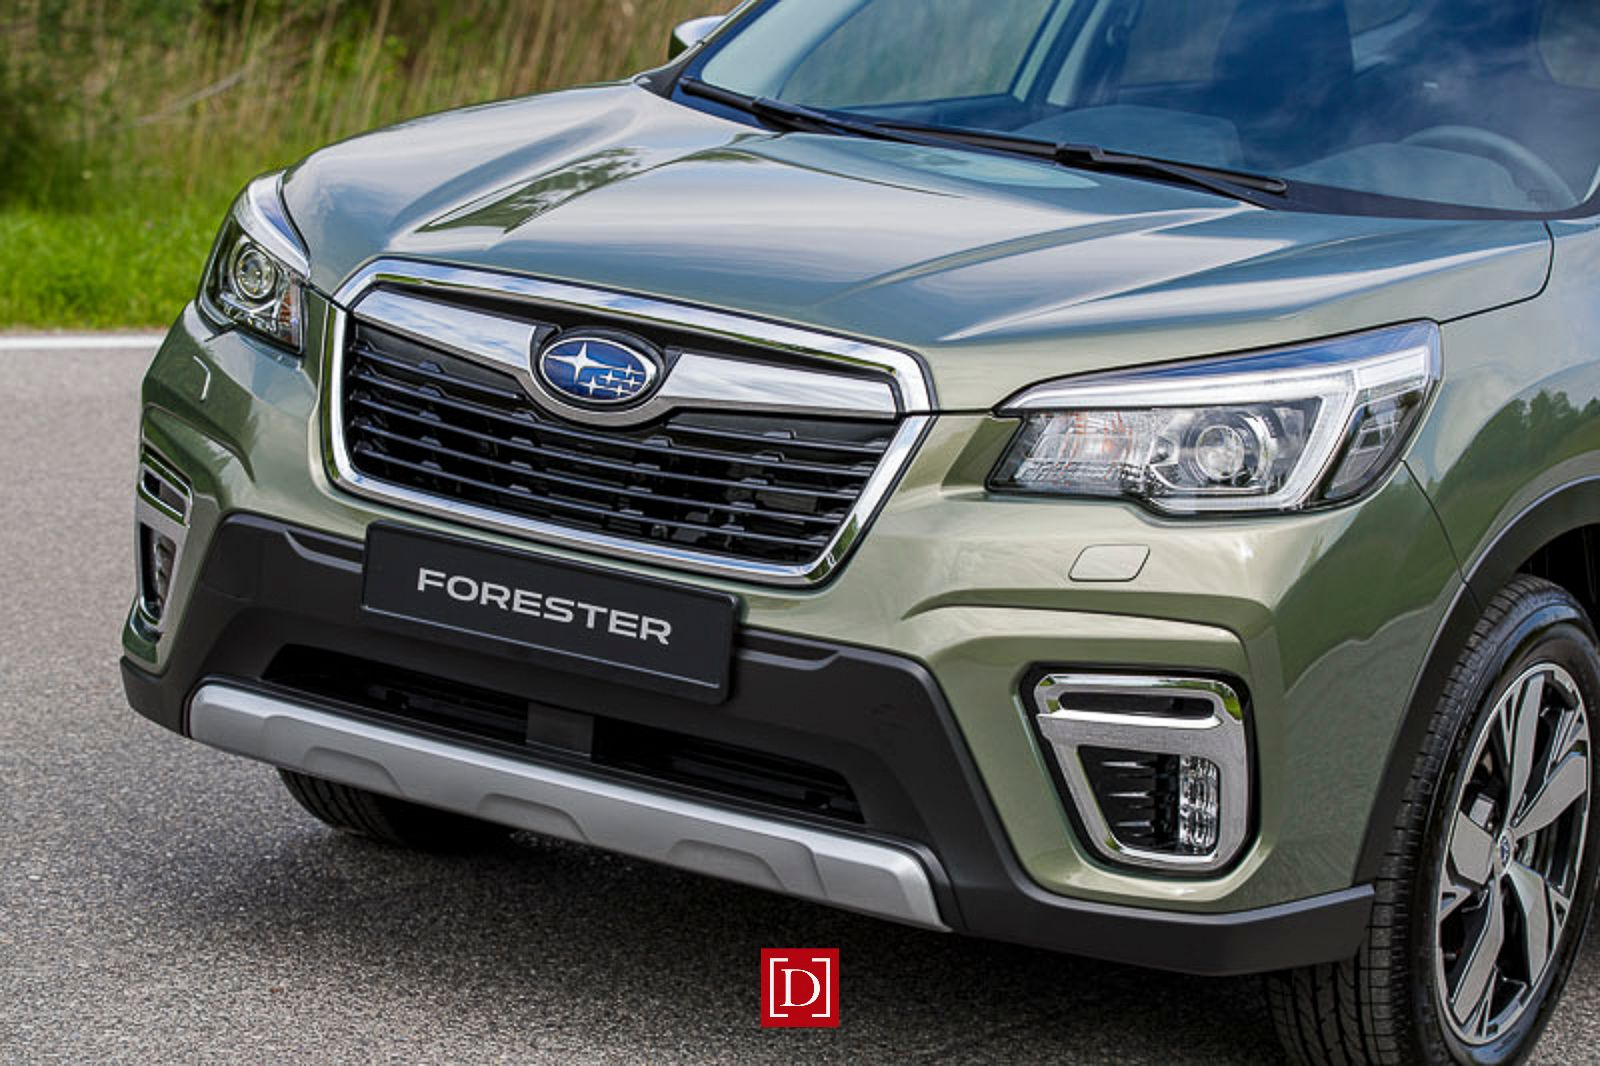 forester-e-boxer_low-016-22683